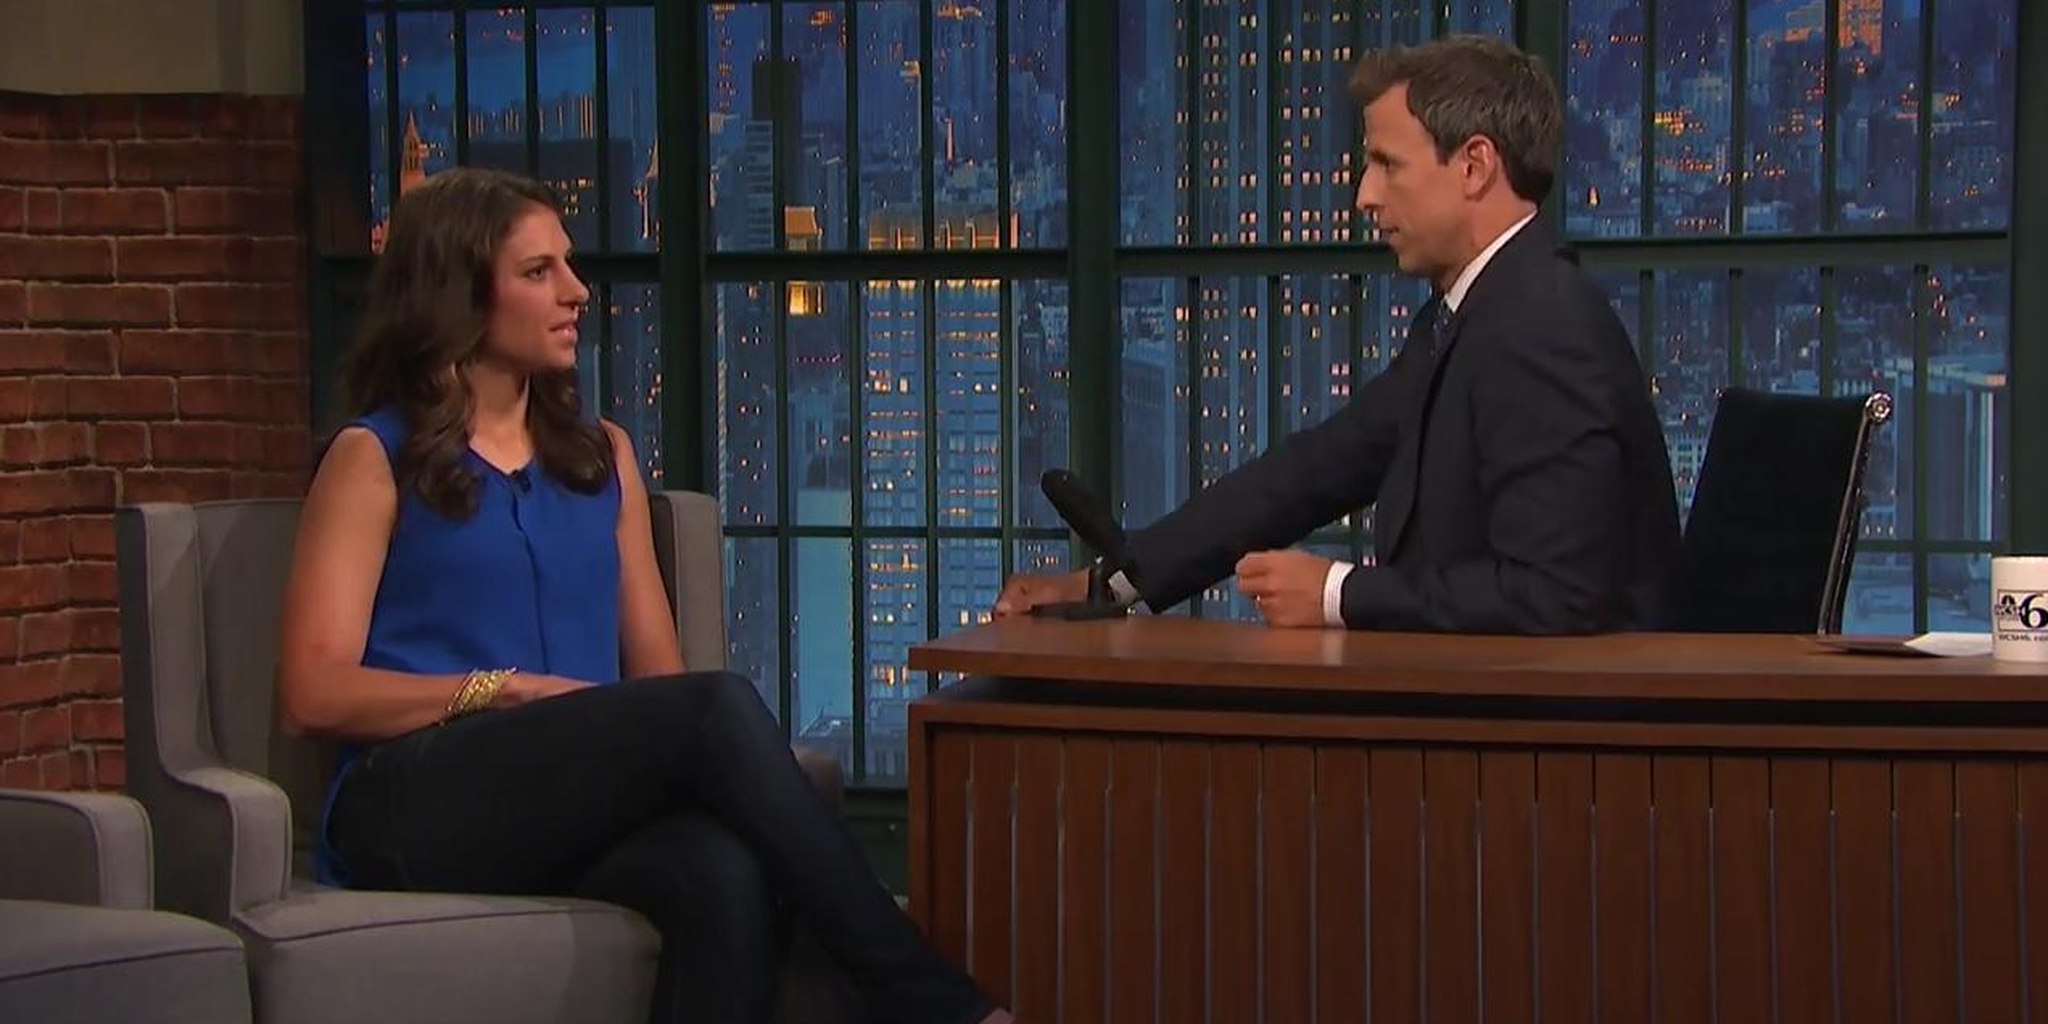 U.S. women's soccer star Carli Lloyd had some choice words about male players 'flopping'